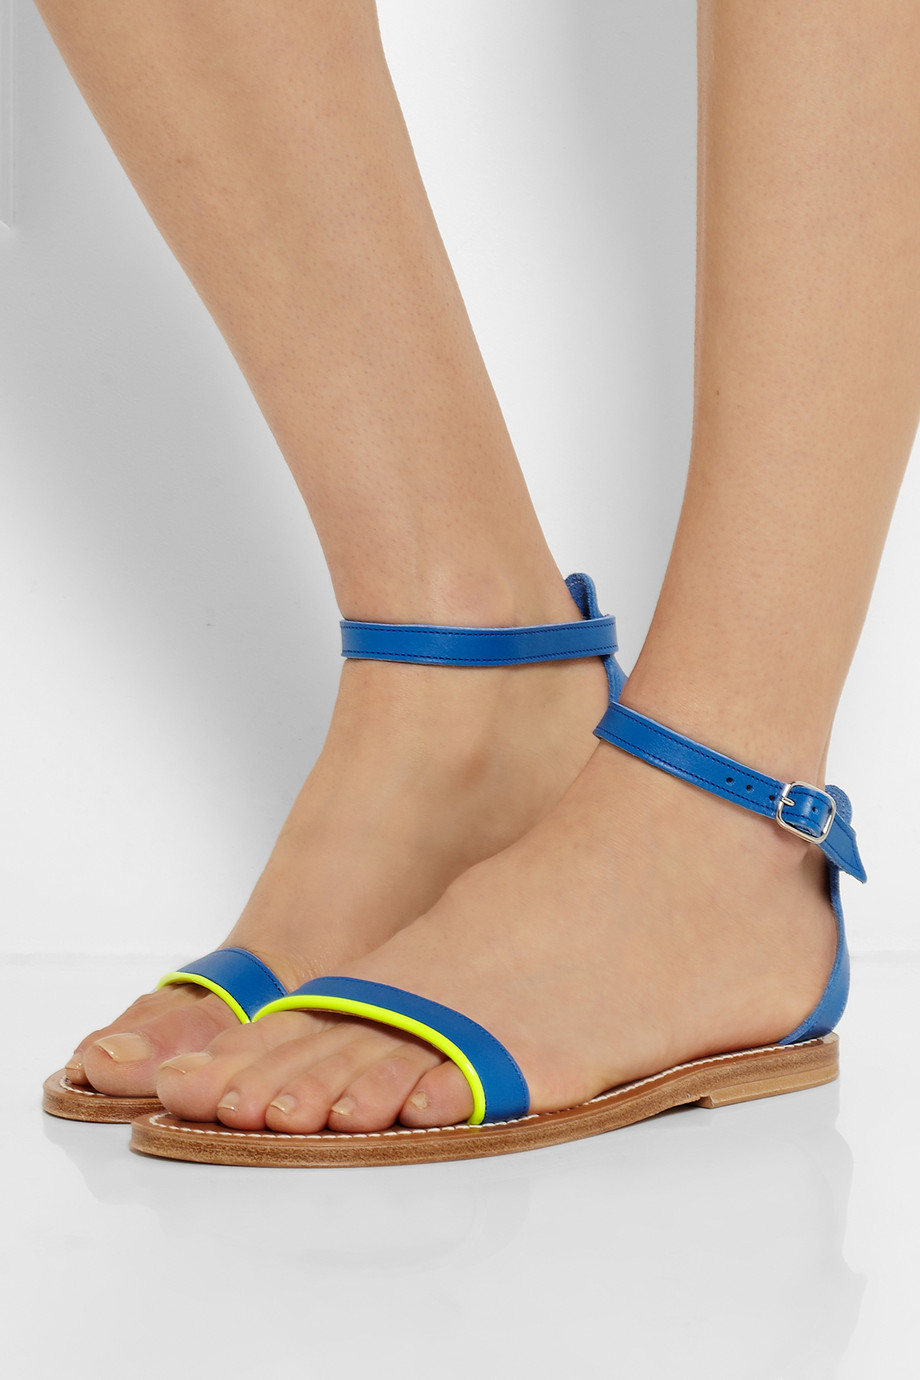 Outlet Geniue Stockist K jacques Laura leather sandals Latest Collections  Cheapest Price For Sale Ll5gKE